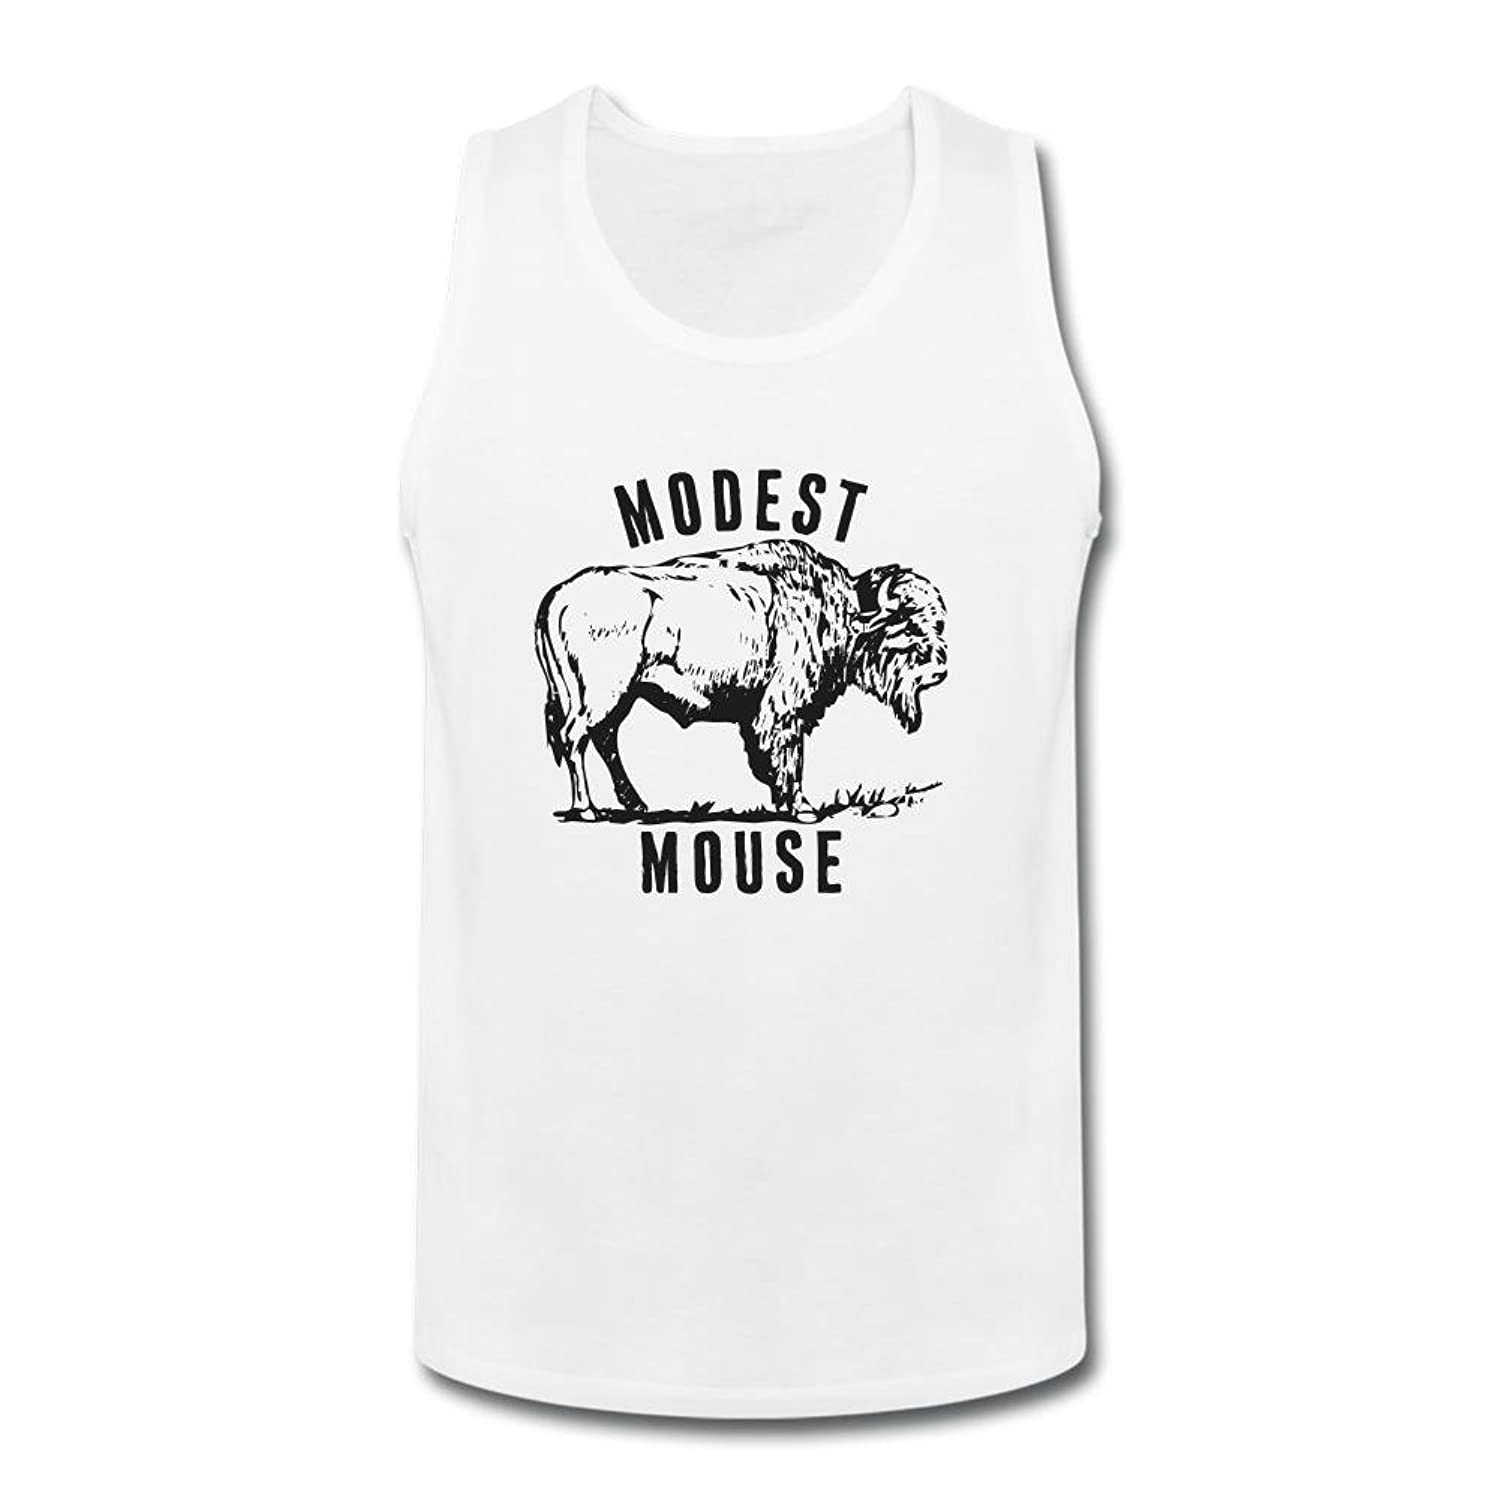 Mustand Flowers Men's Modest Mouse 1 Vest Tank